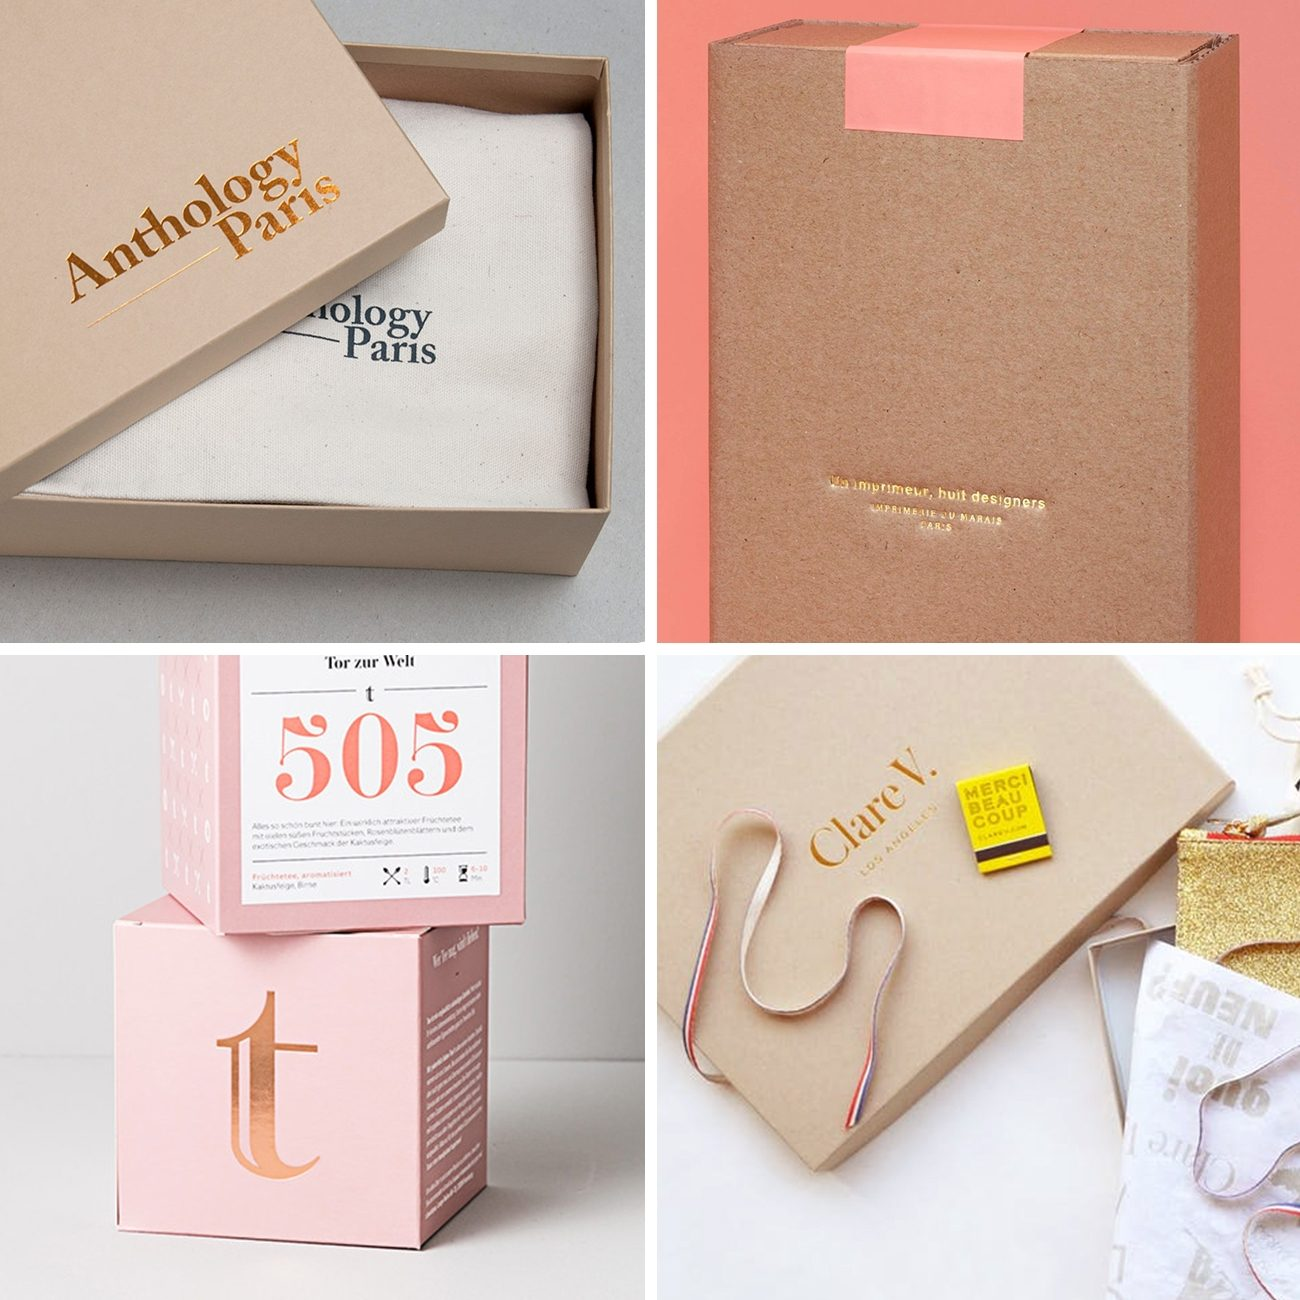 Photos via: Parametro Studio, Studio Plastac, —, Braeutigam Rotermund, Clare V 60 Ideas to Spruce Up Your Holiday Packaging Design